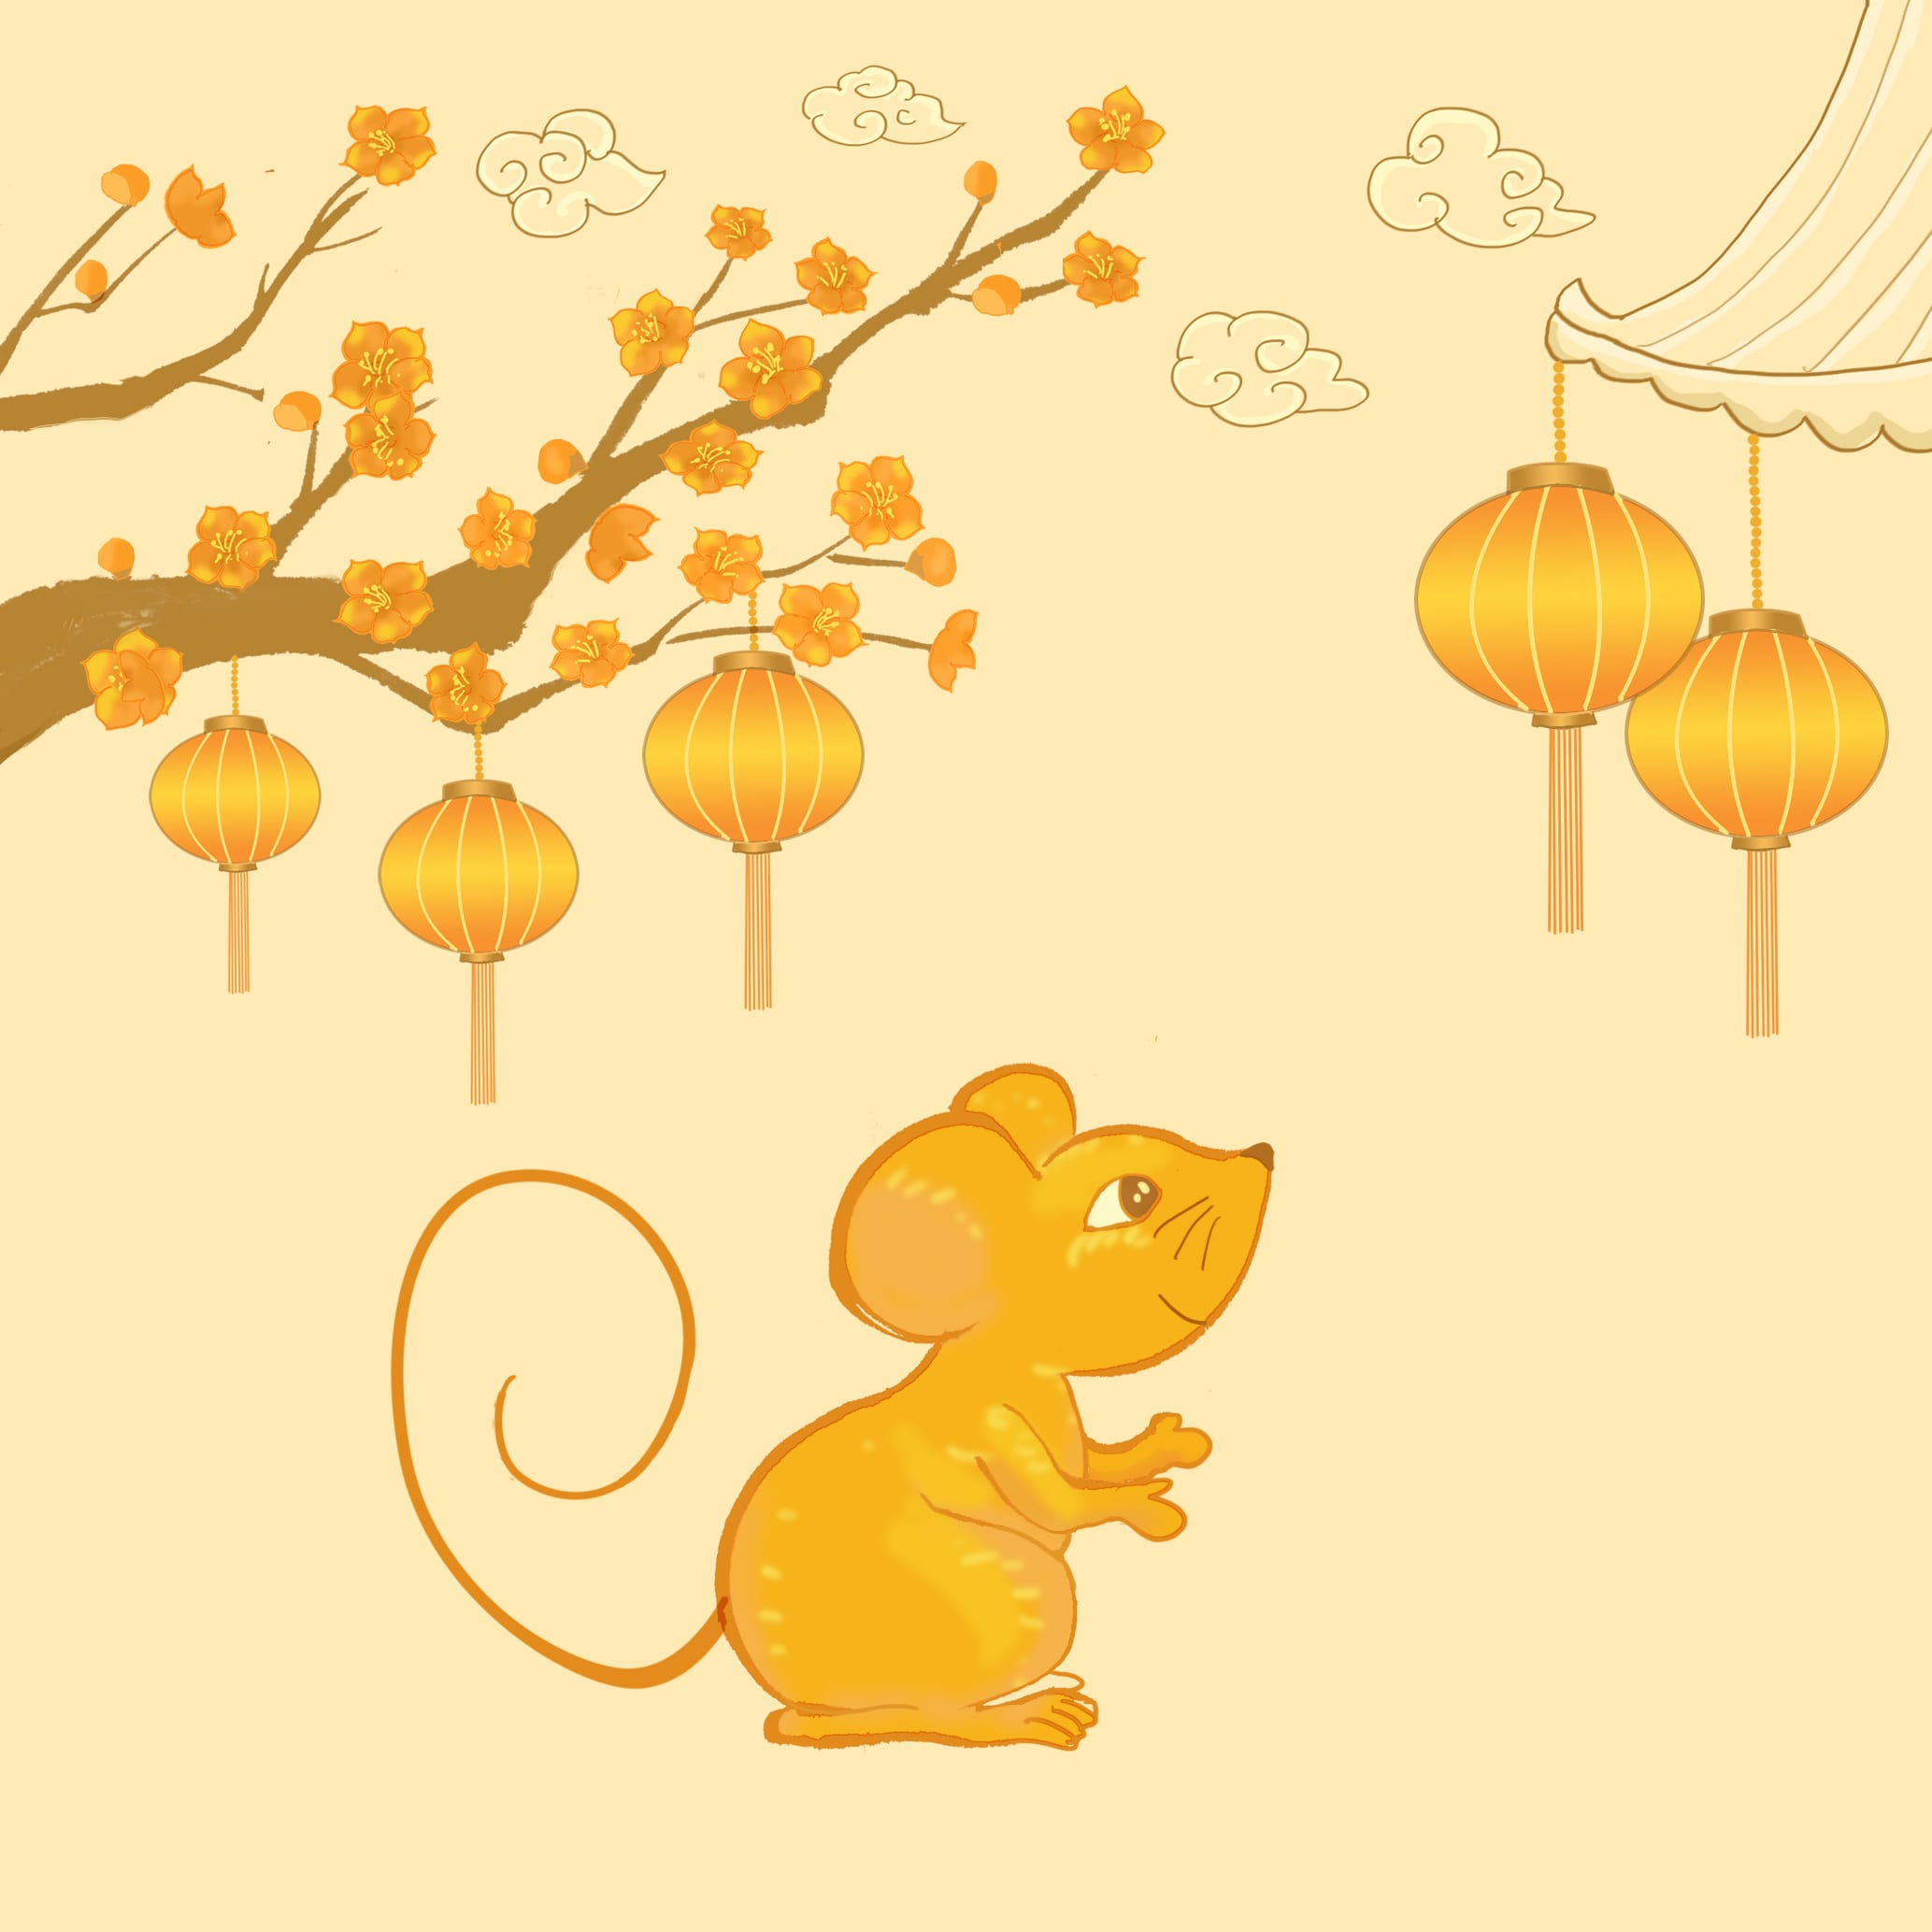 What to expect in the Year of the Rat